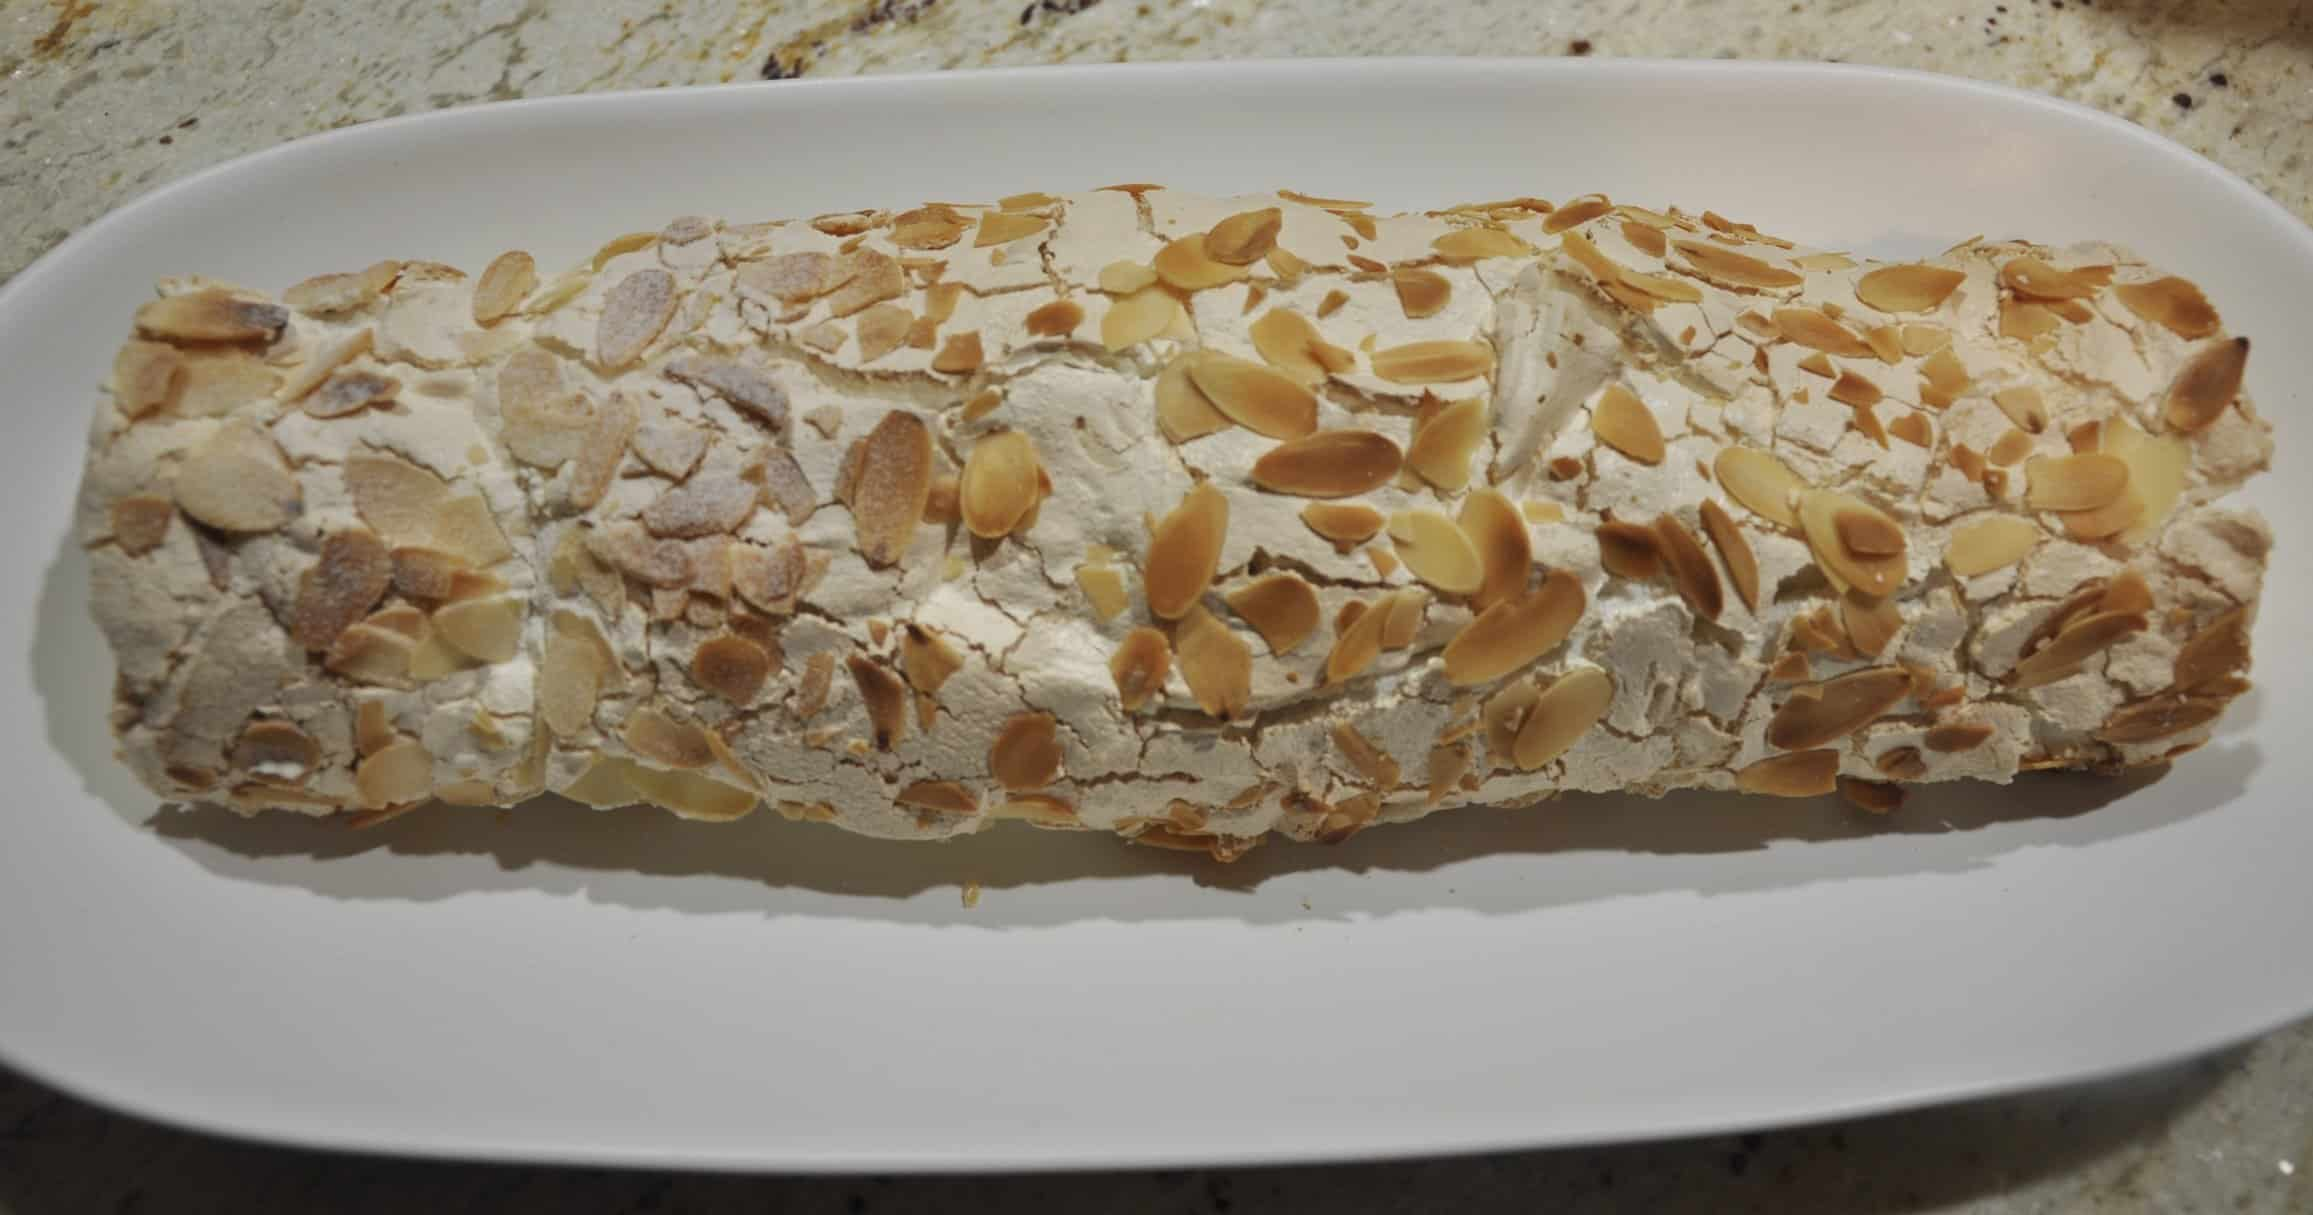 emon curd and almond rolled pavlova finished rolling on a white platter